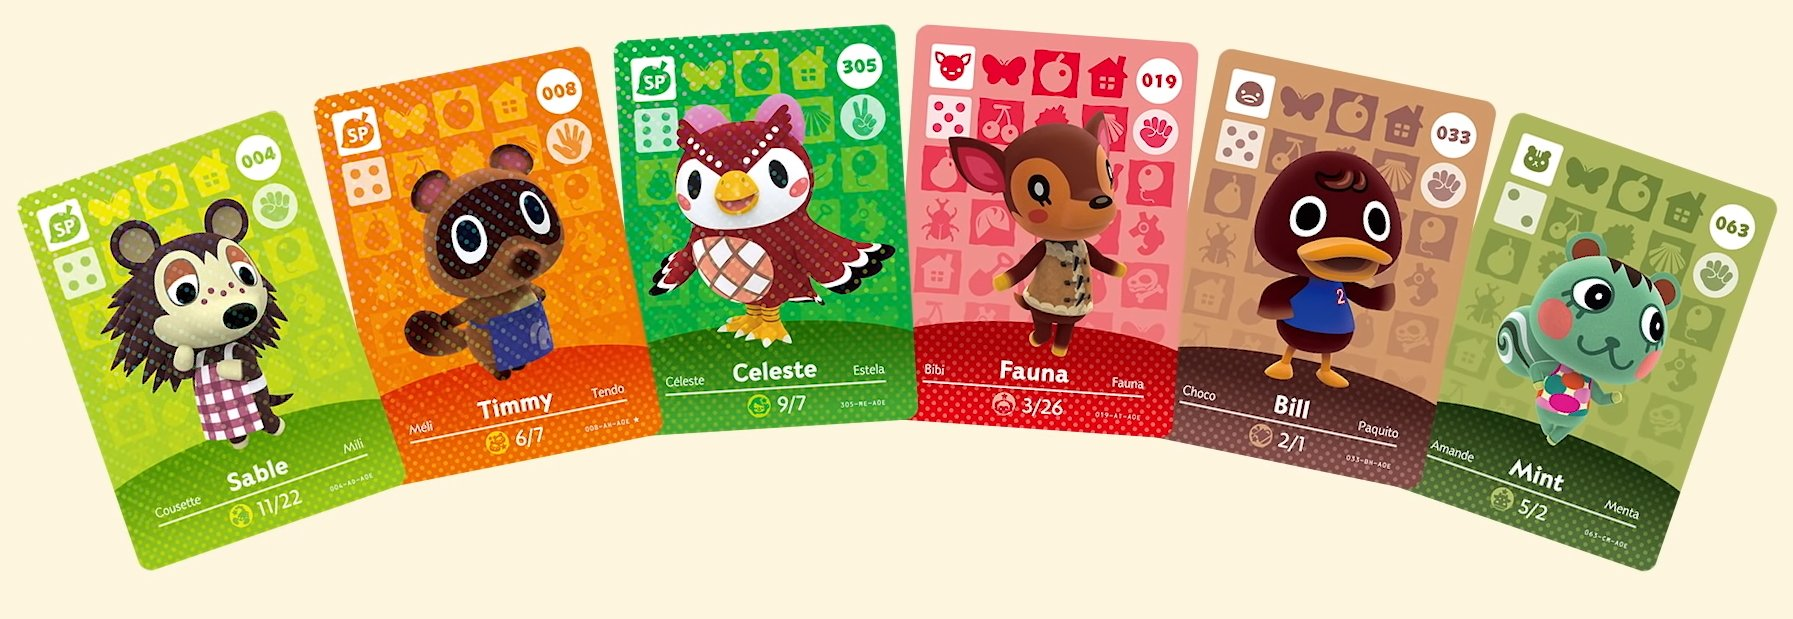 All villagers animal crossing new horizons